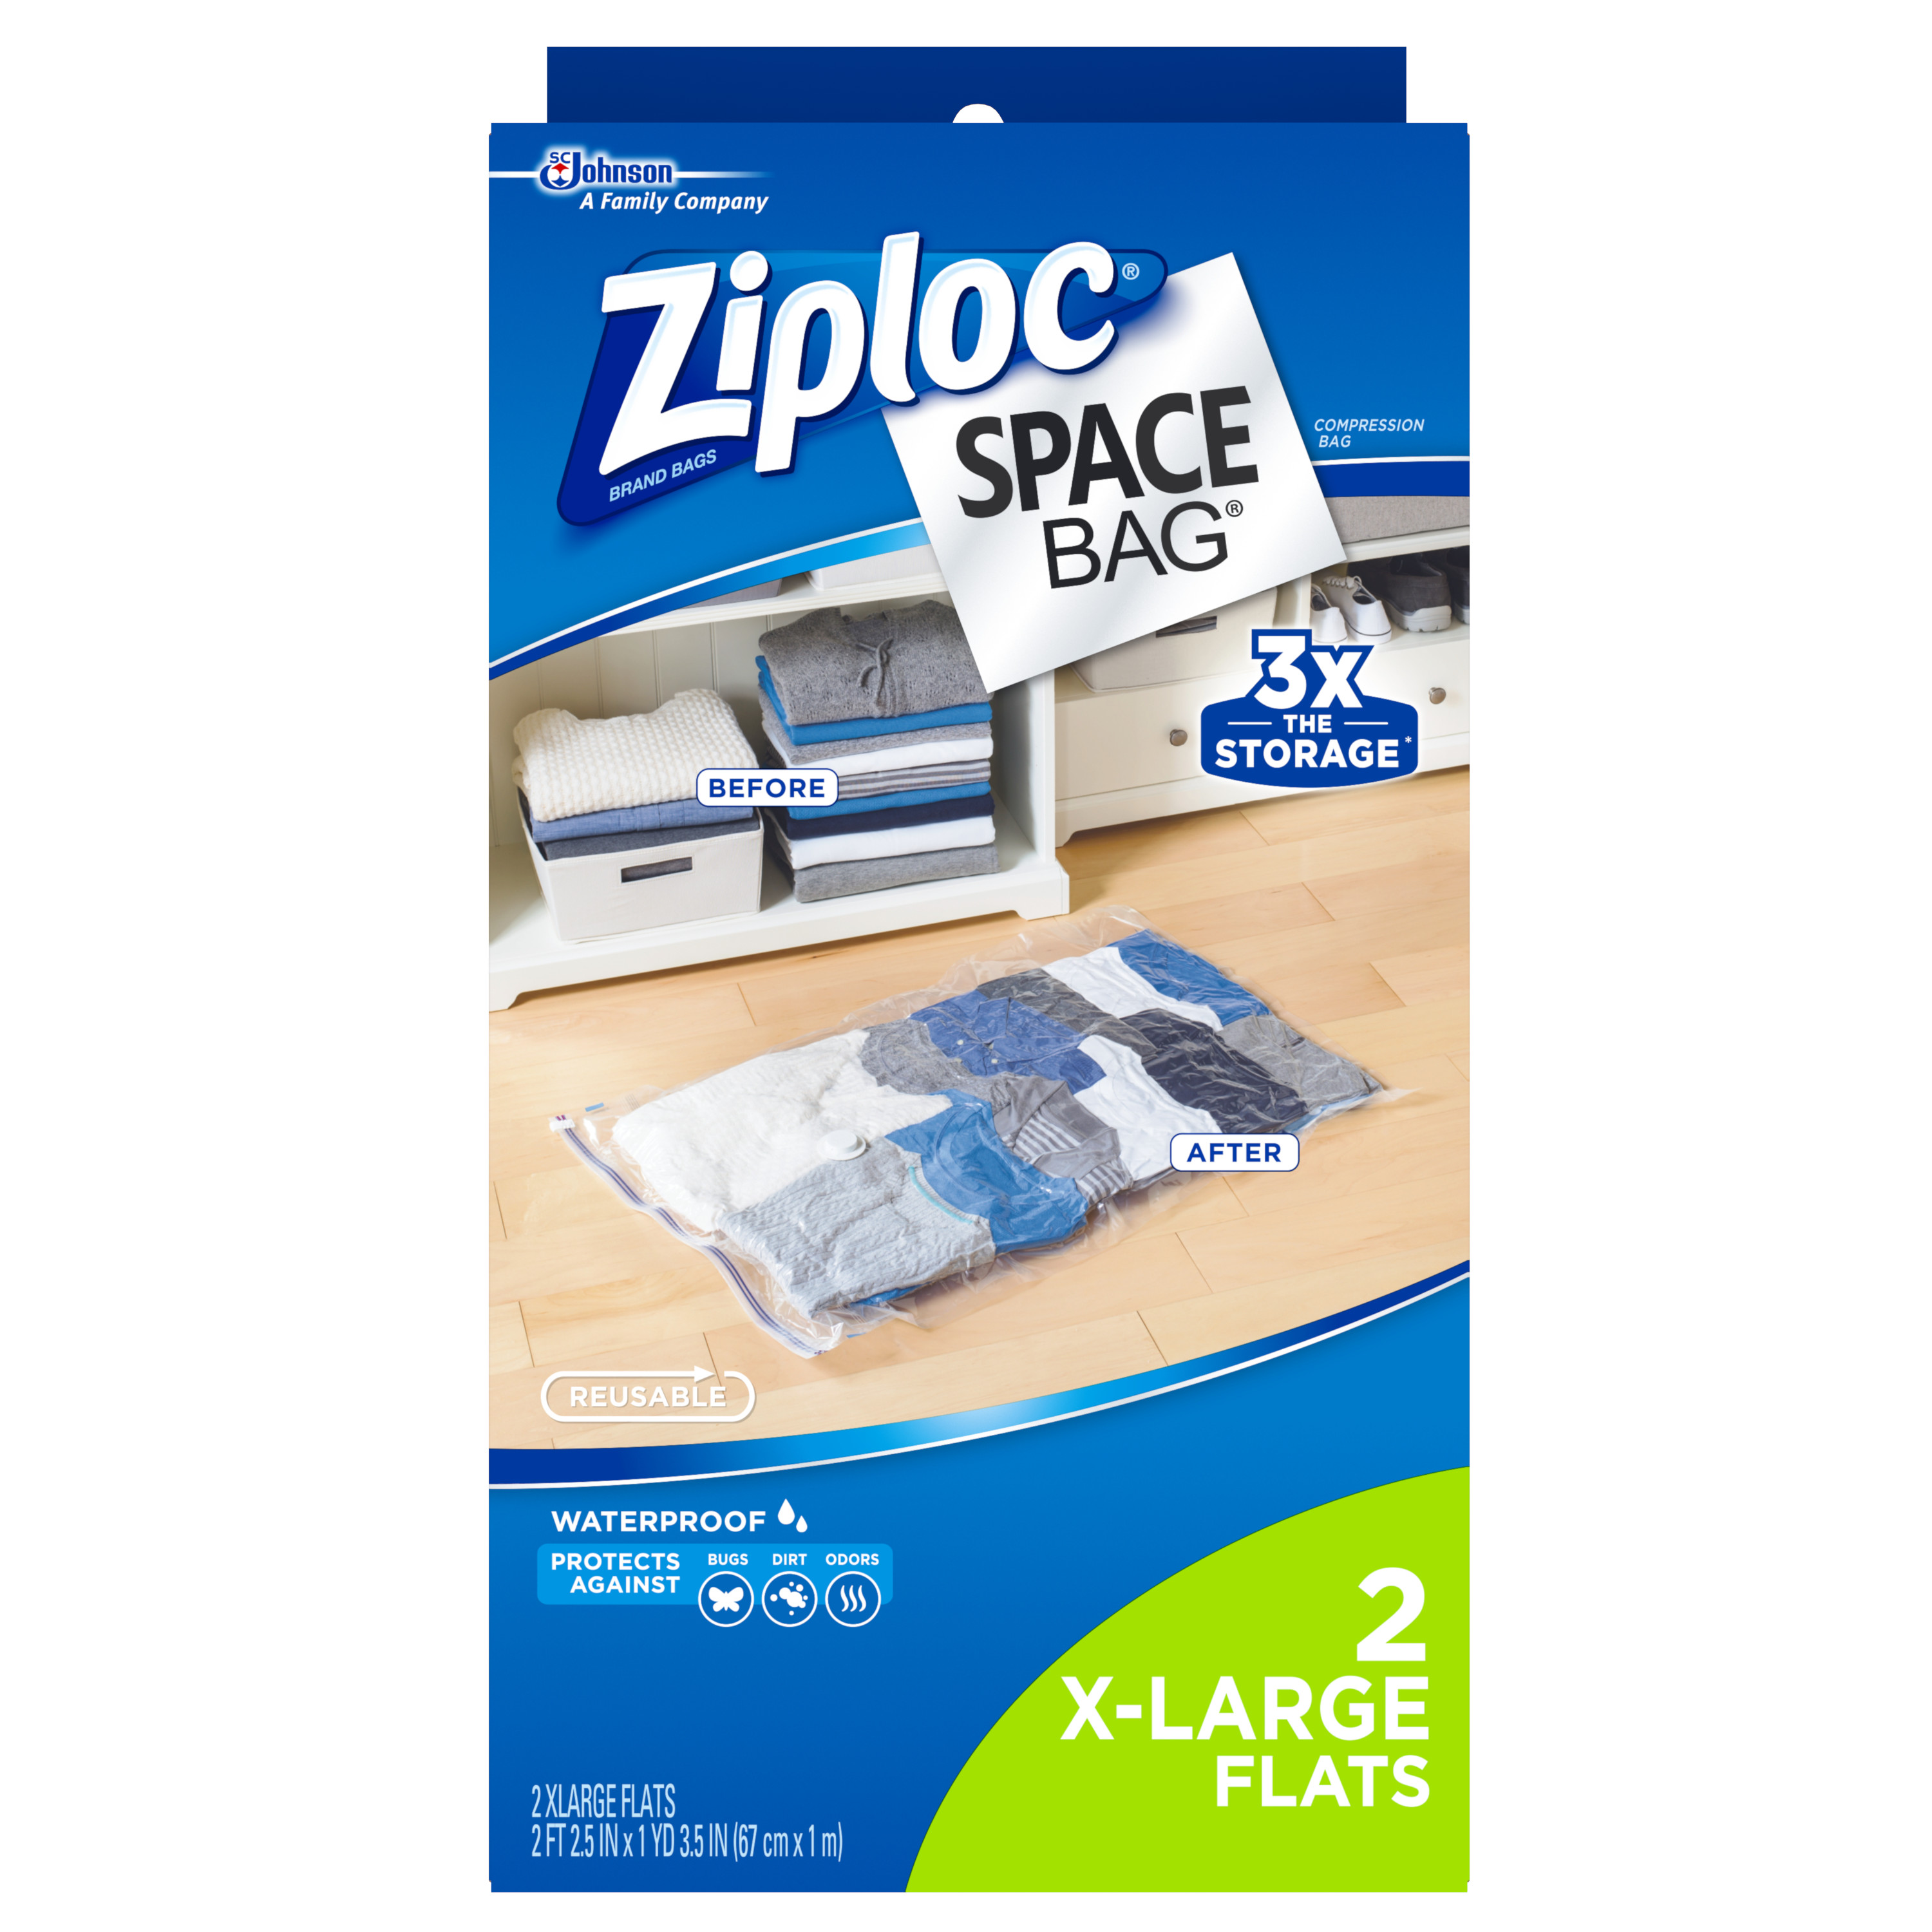 Ziploc Space Bag 2 count XL Flat Bag